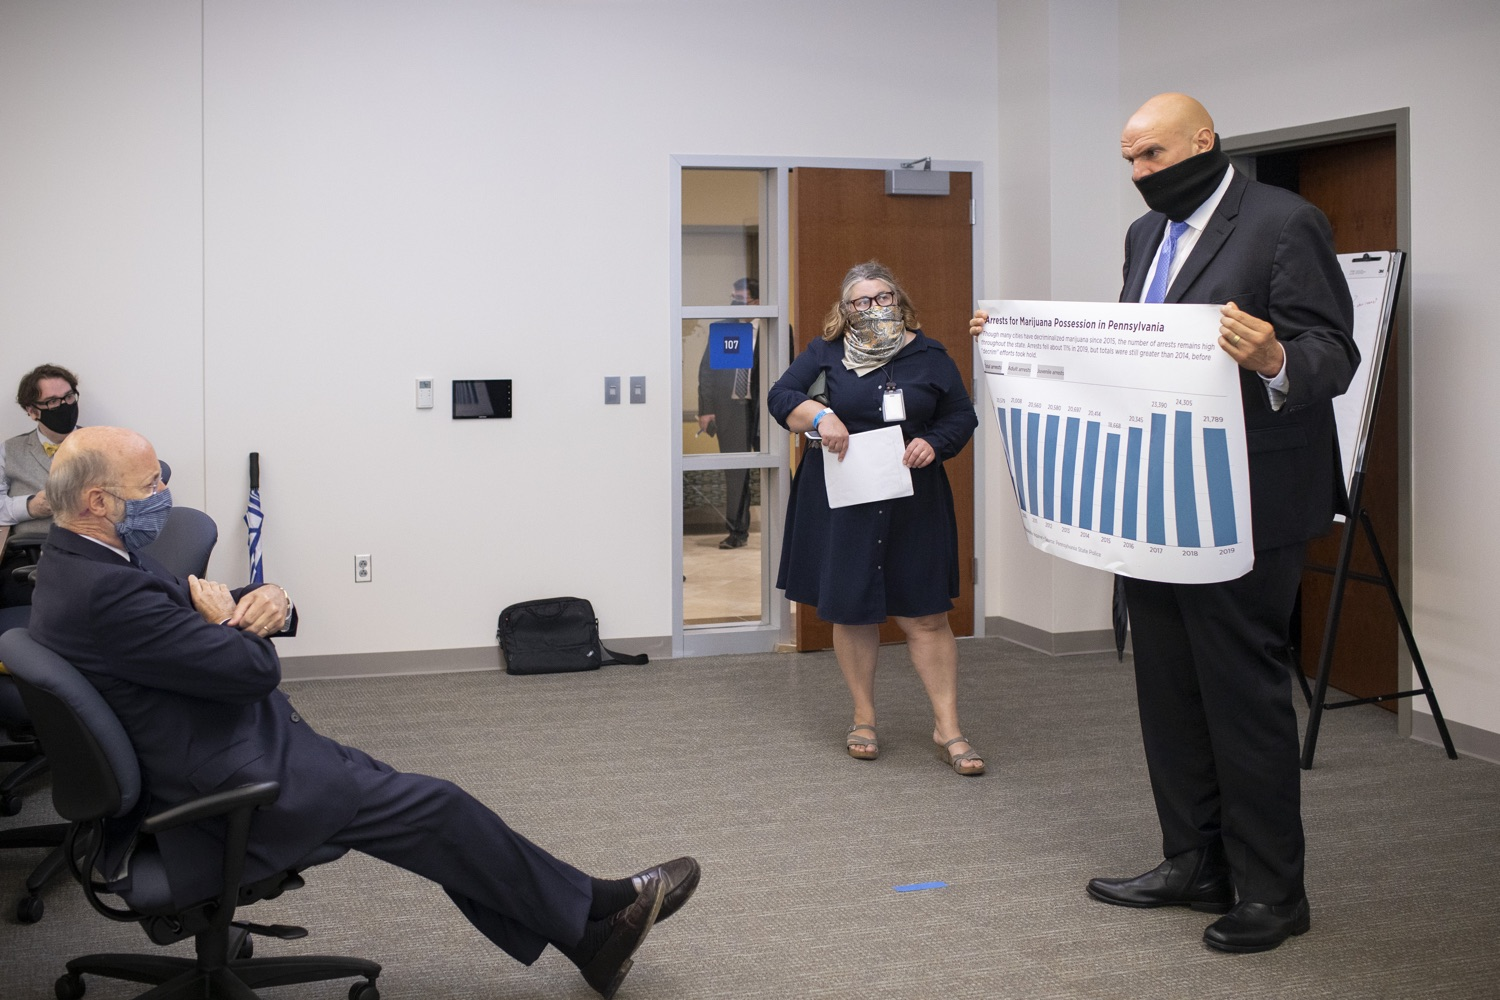 """<a href=""""https://filesource.wostreaming.net/commonwealthofpa/photo/18239_gov_recMarijuana_dz_011.jpg"""" target=""""_blank"""">⇣Download Photo<br></a>Lt. Gov. John Fetterman speaking with Governor Tom Wolf before the event.   Governor Tom Wolf and Lt. Governor John Fetterman today called on the legislature to take up the legalization of adult-use cannabis to help with the states economic recovery amid COVID-19. Legalization will also create more outlets for important restorative justice programs in the commonwealth.  Harrisburg, PA  Sept. 3, 2020"""